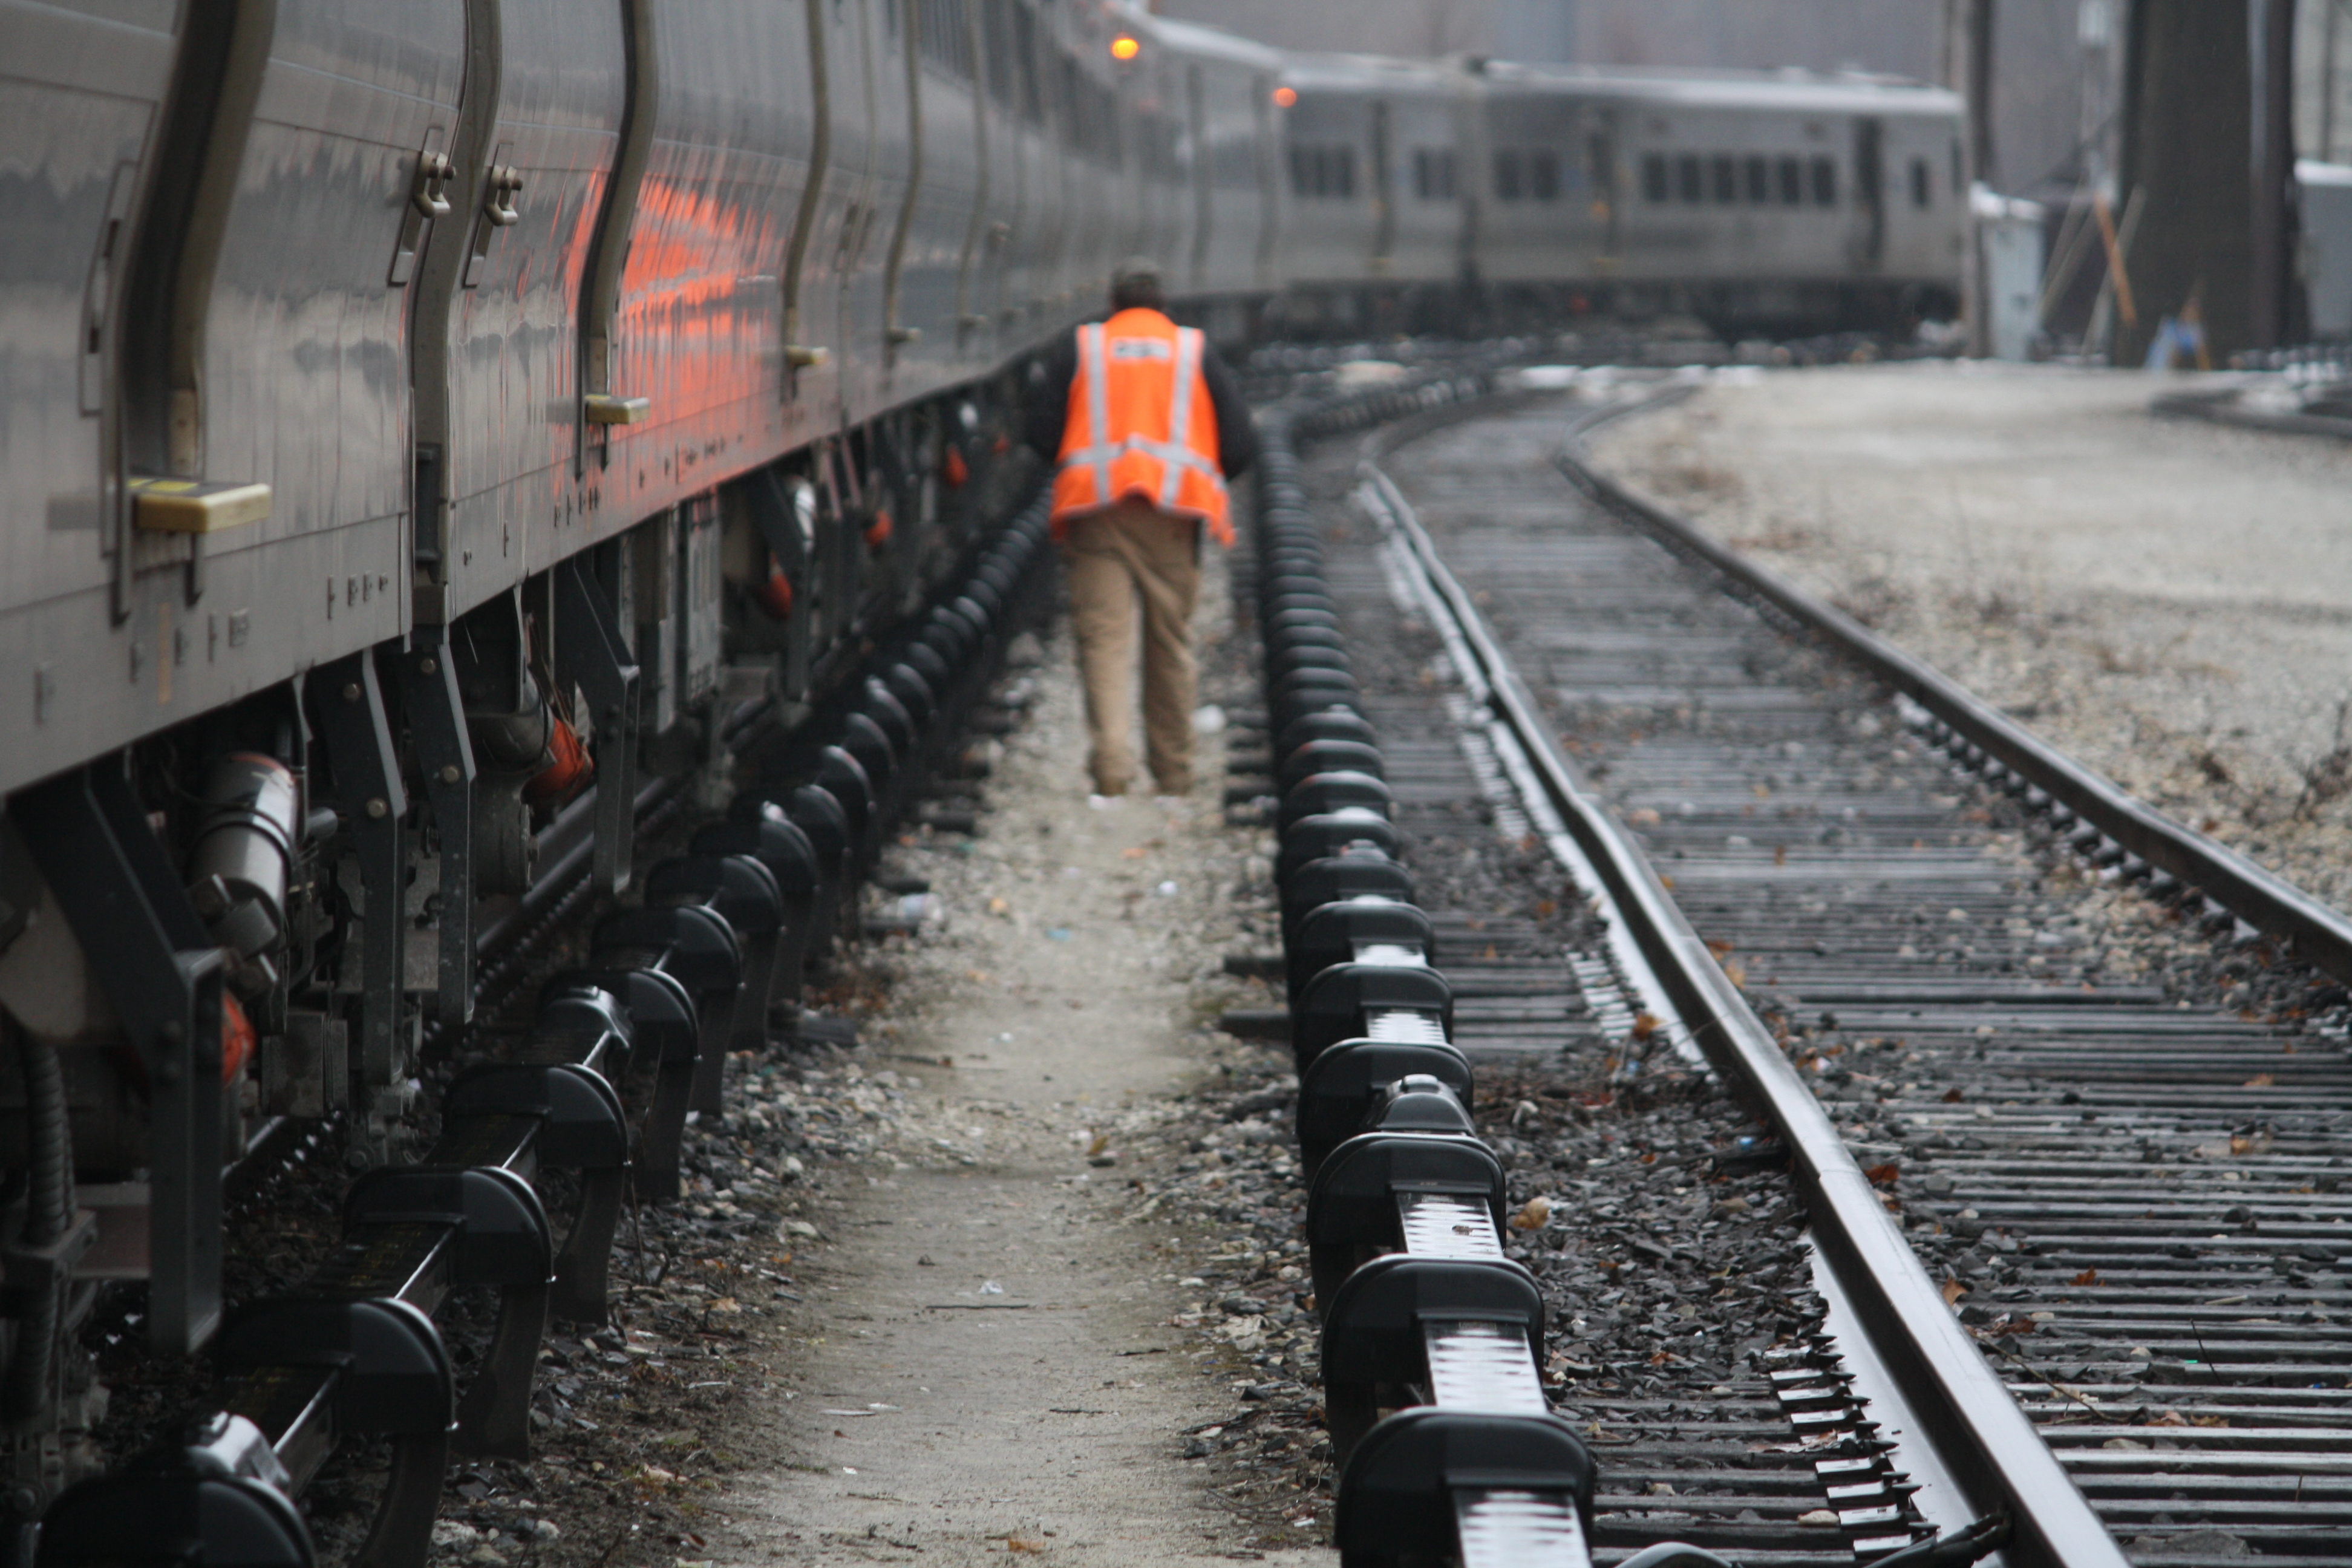 FRA deep dive into metro north death shows failed railroad safety culture